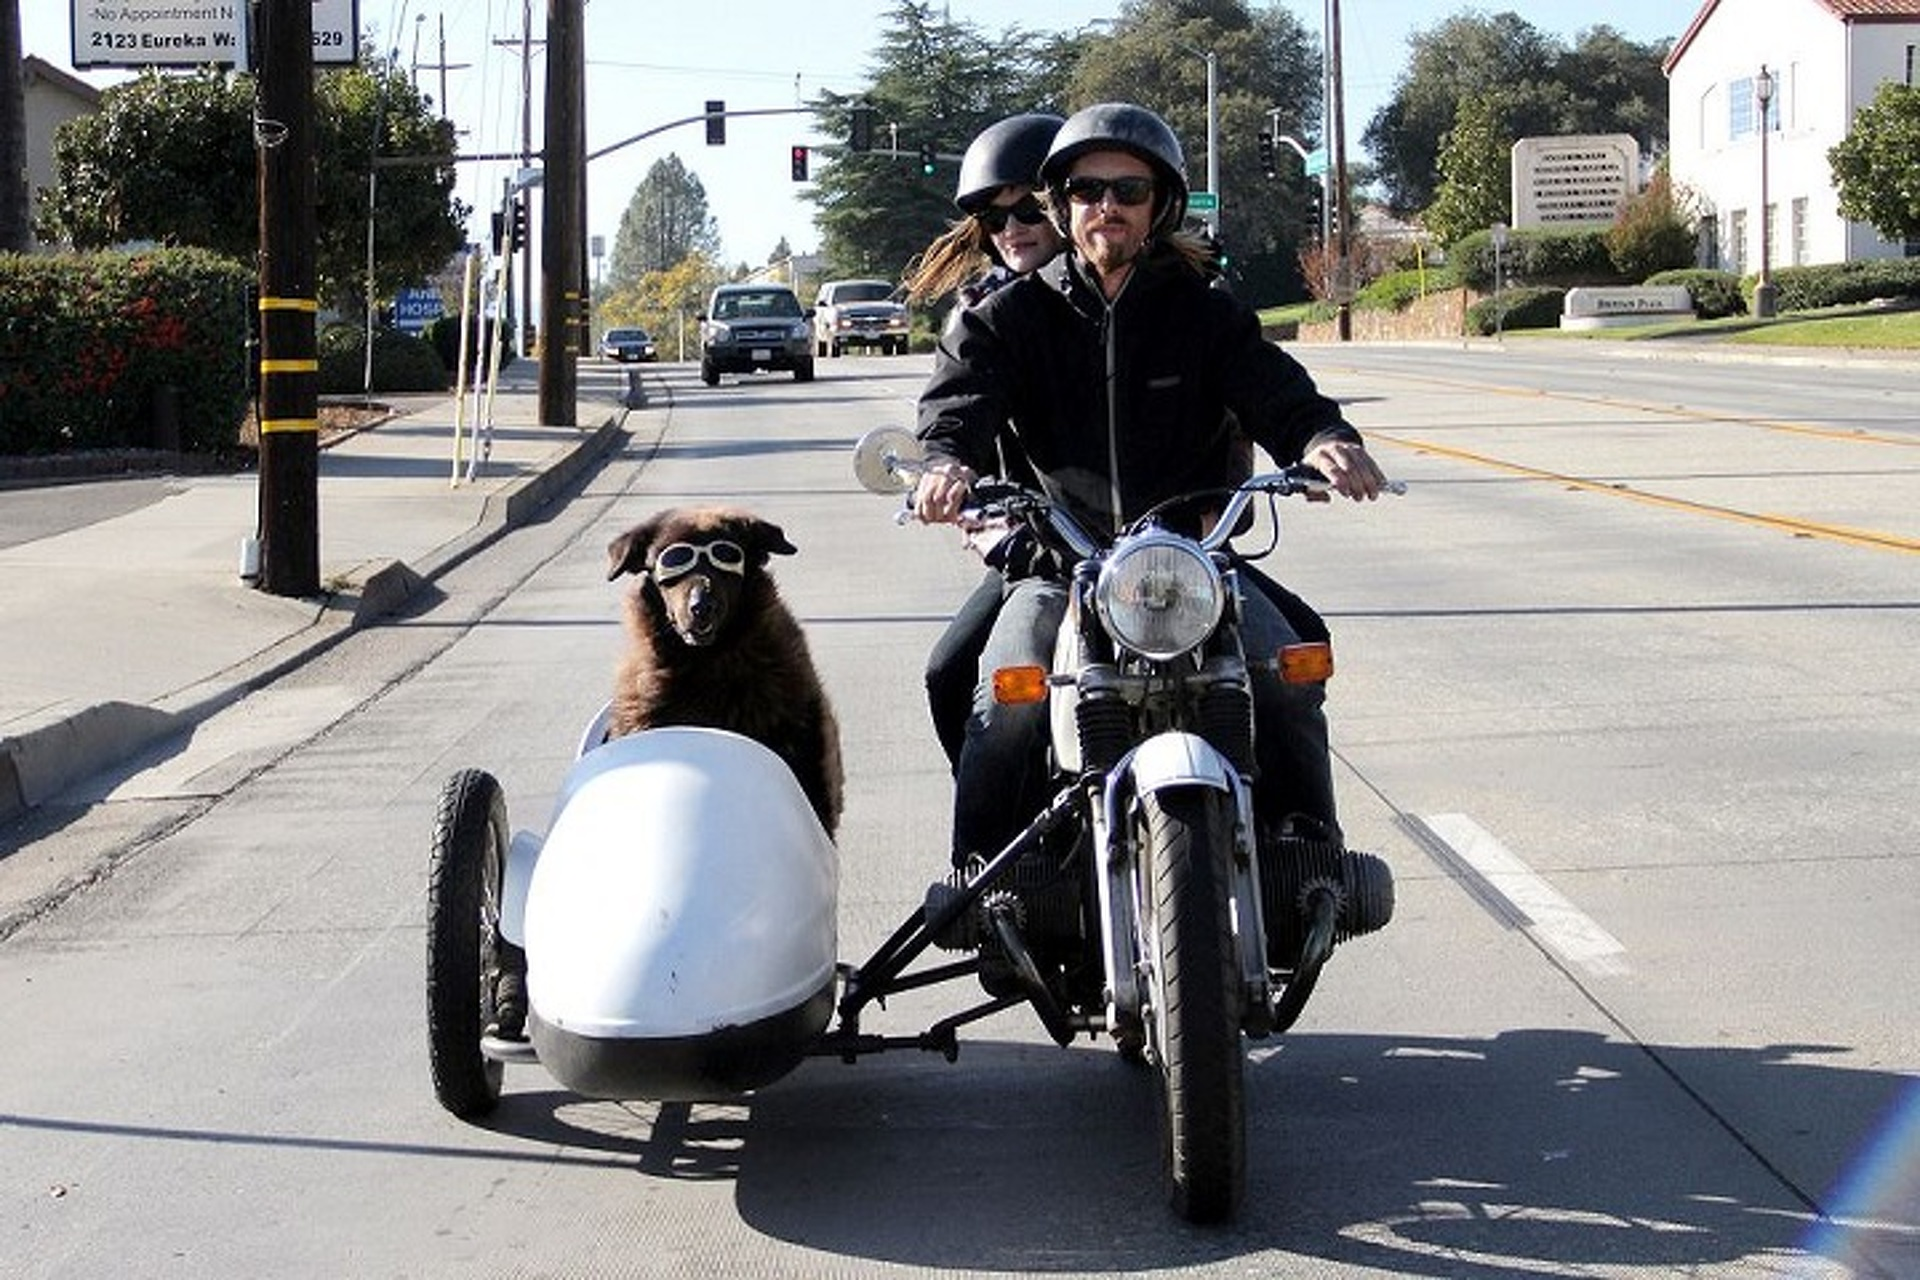 Dogs in Sidecars Movie Trailer Will Make You Smile